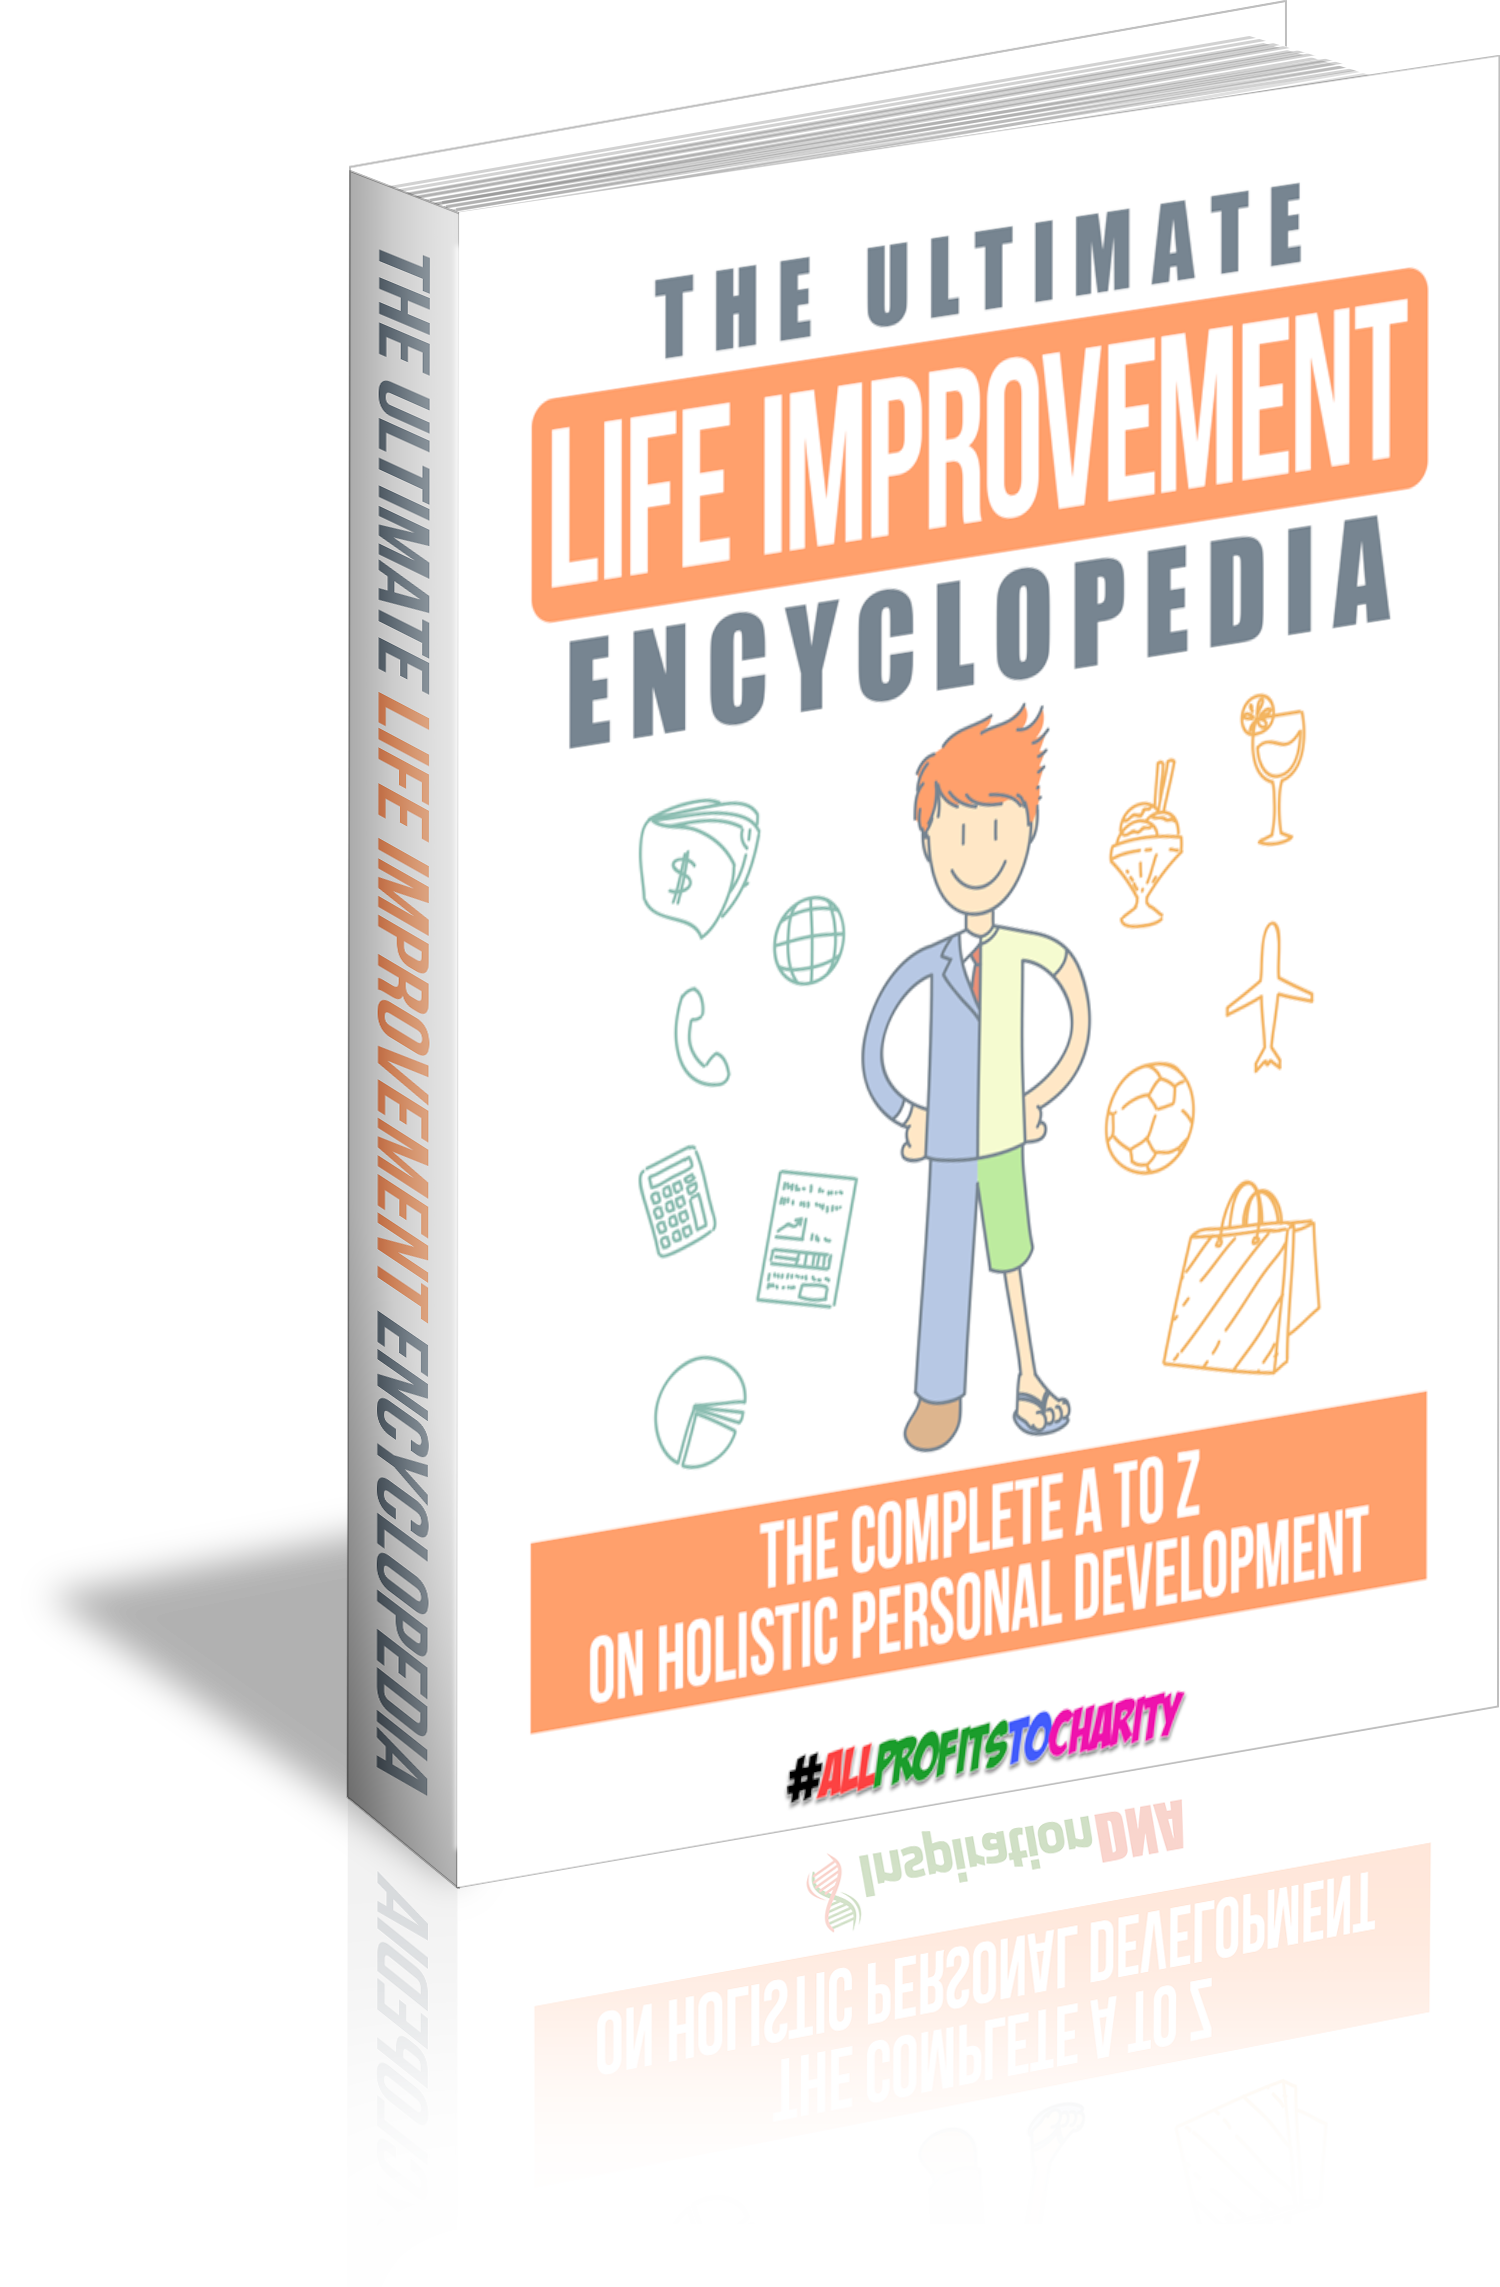 The Ultimate Life Improvement Encyclopedia cover